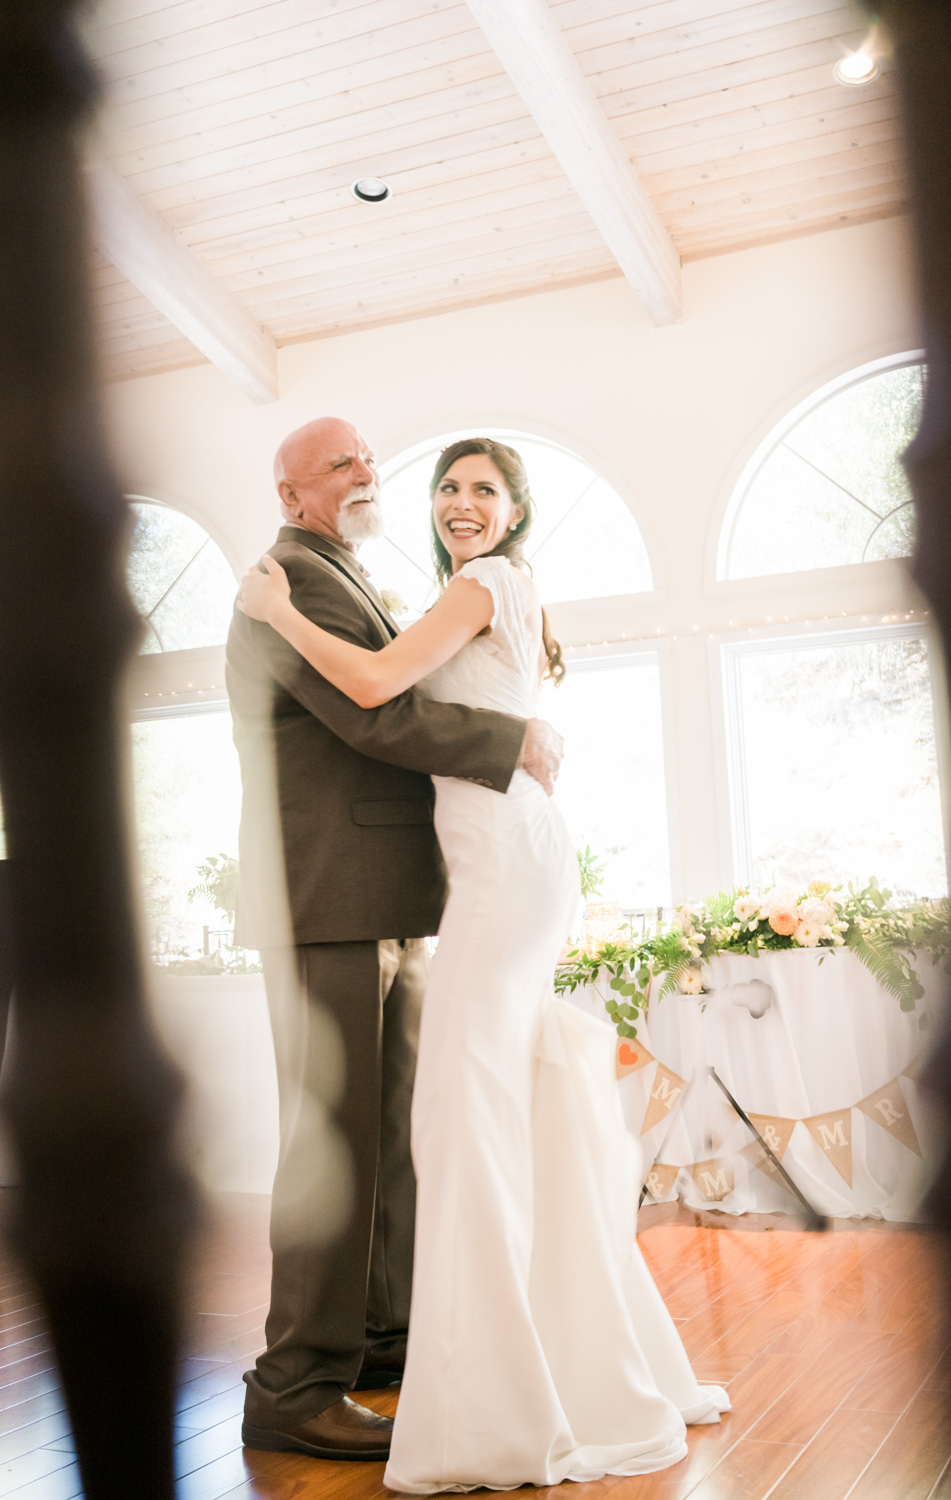 Bride dancing with her father - Photograph through the chair bars.